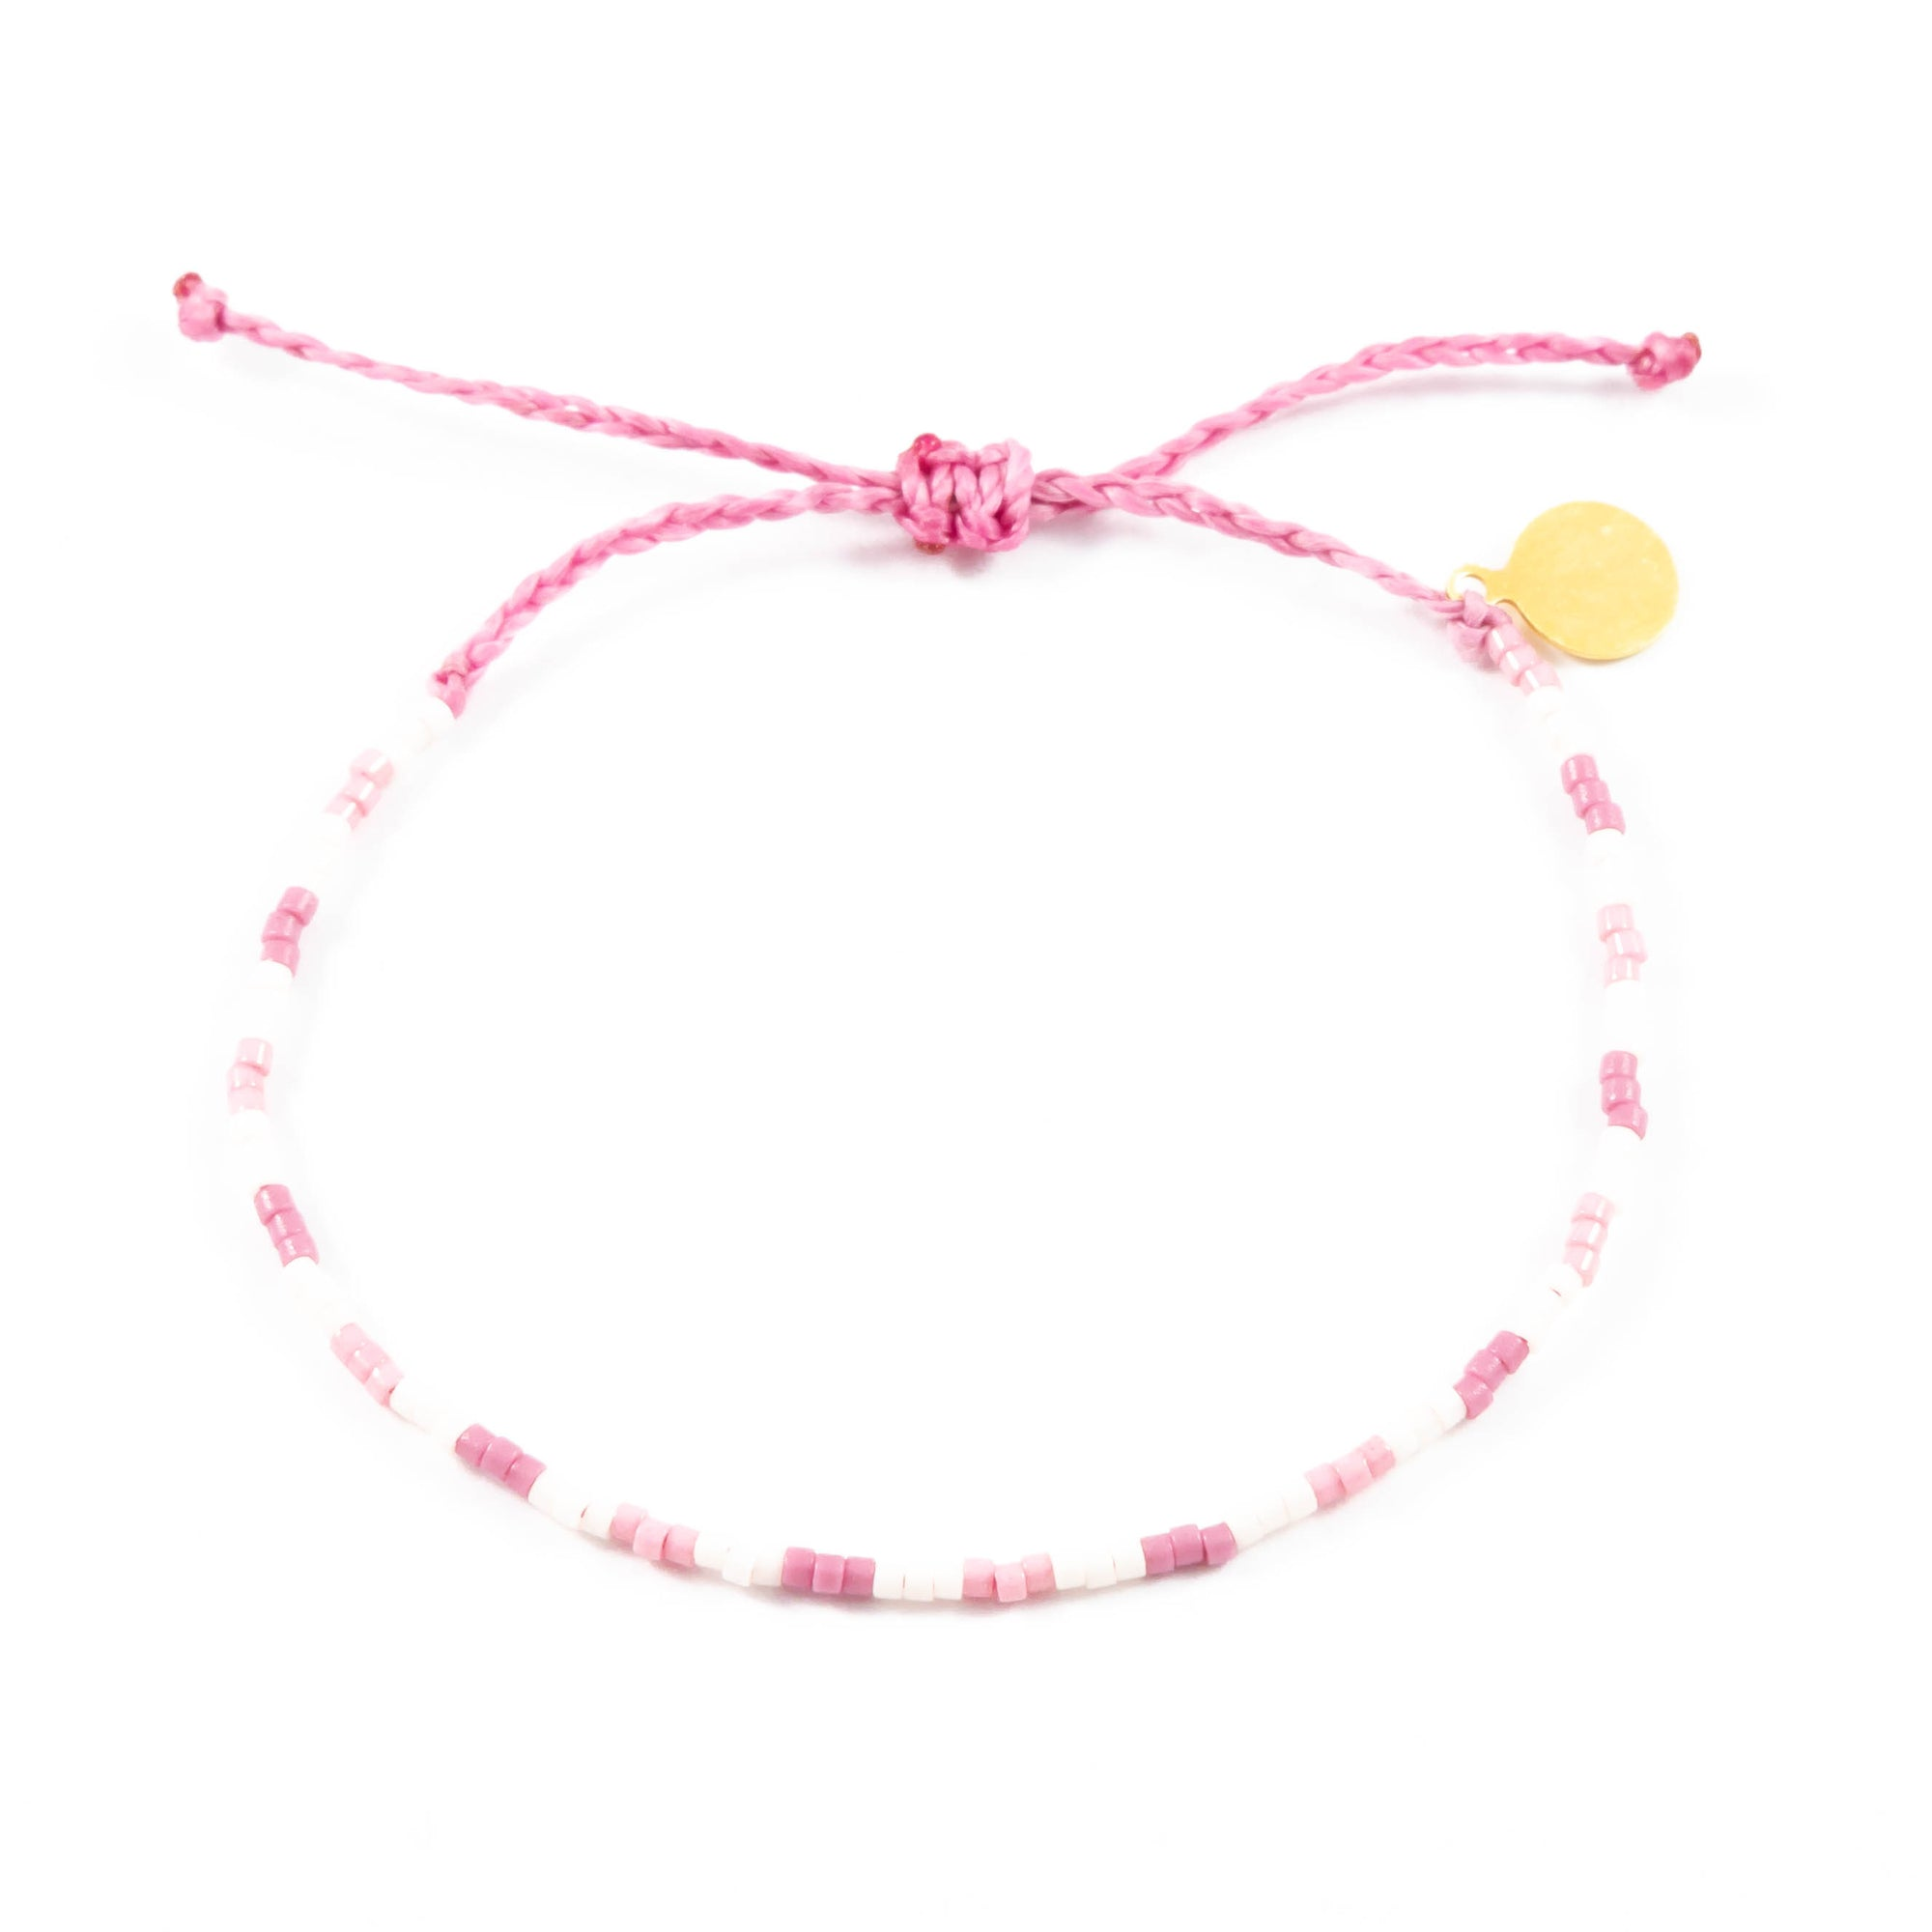 Pinks Shades of Giving Bead Bracelet